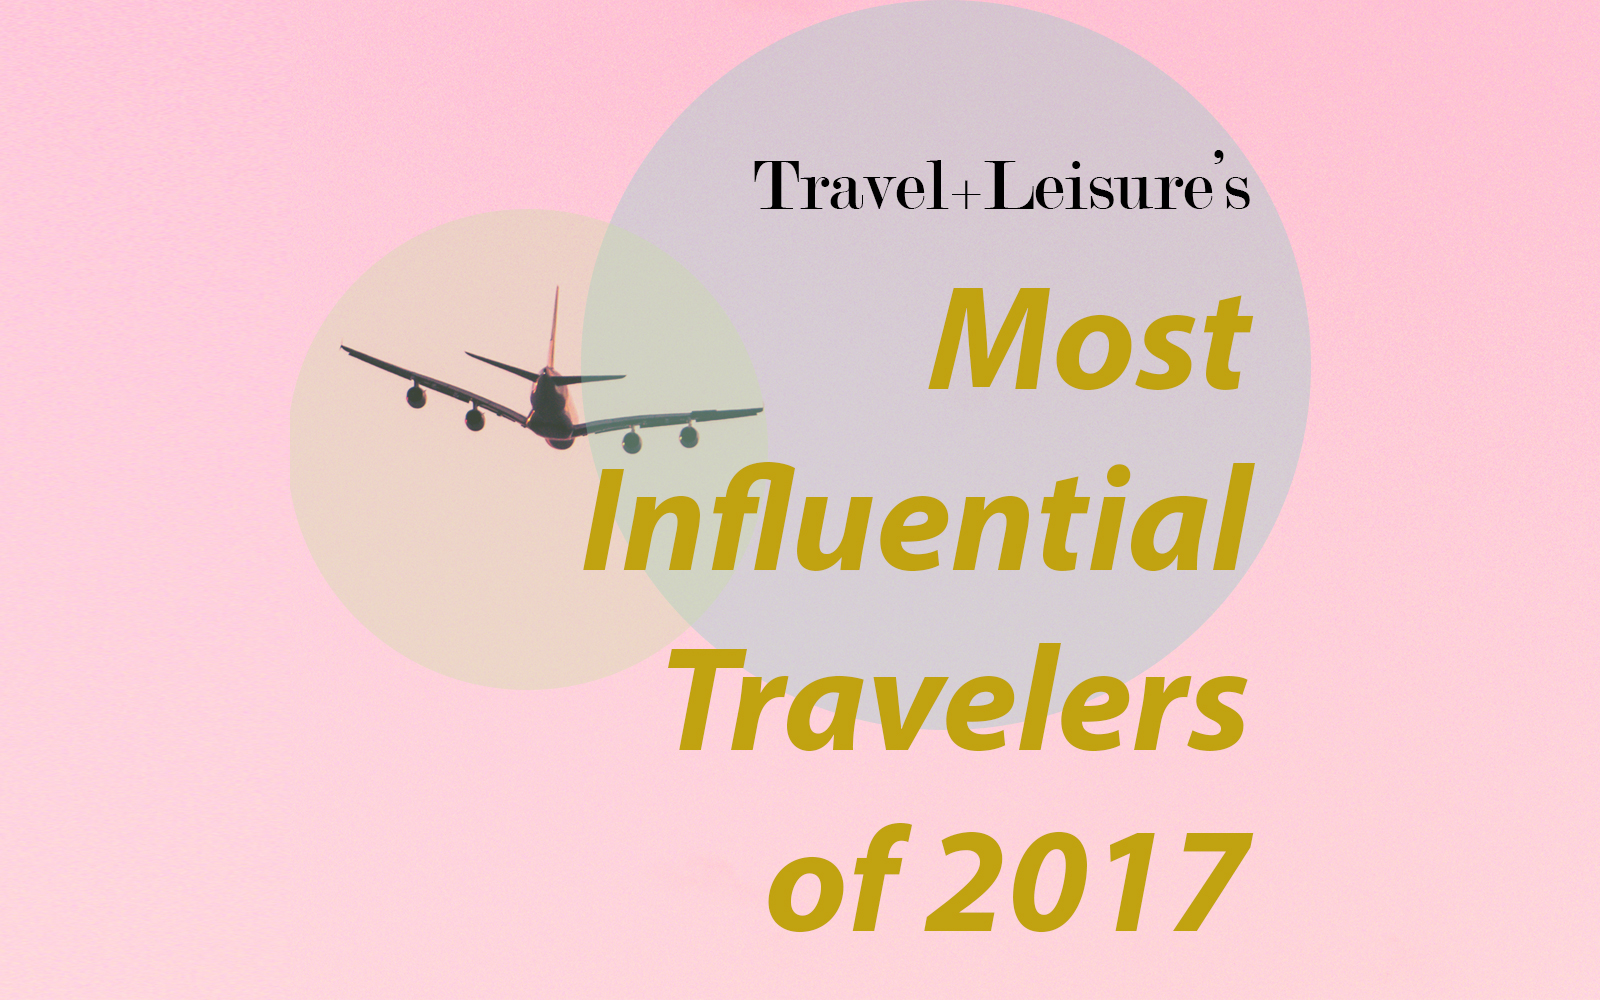 The Most Influential Travelers of 2017